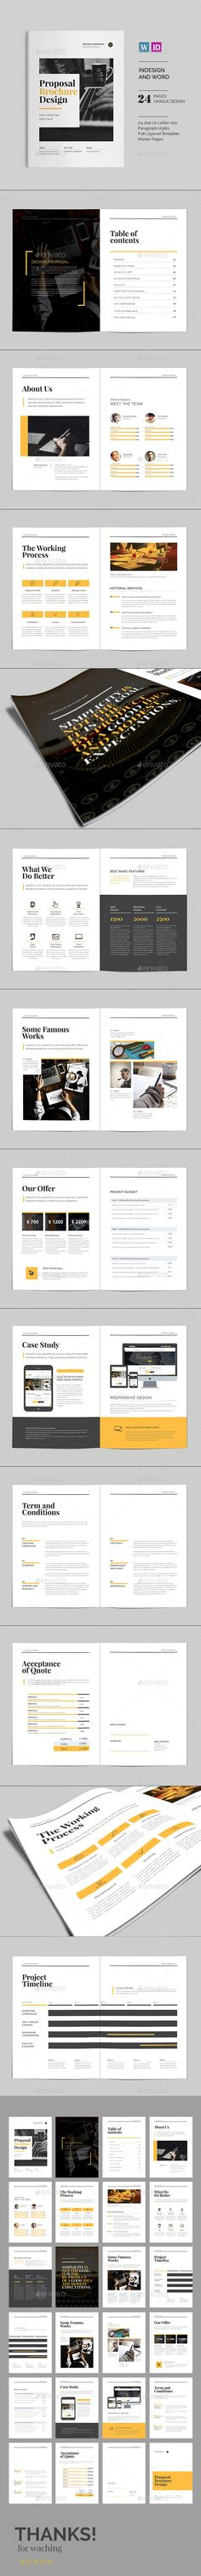 Commercial Proposal Format Stunning The Business Proposal Template  Business Proposal Template .